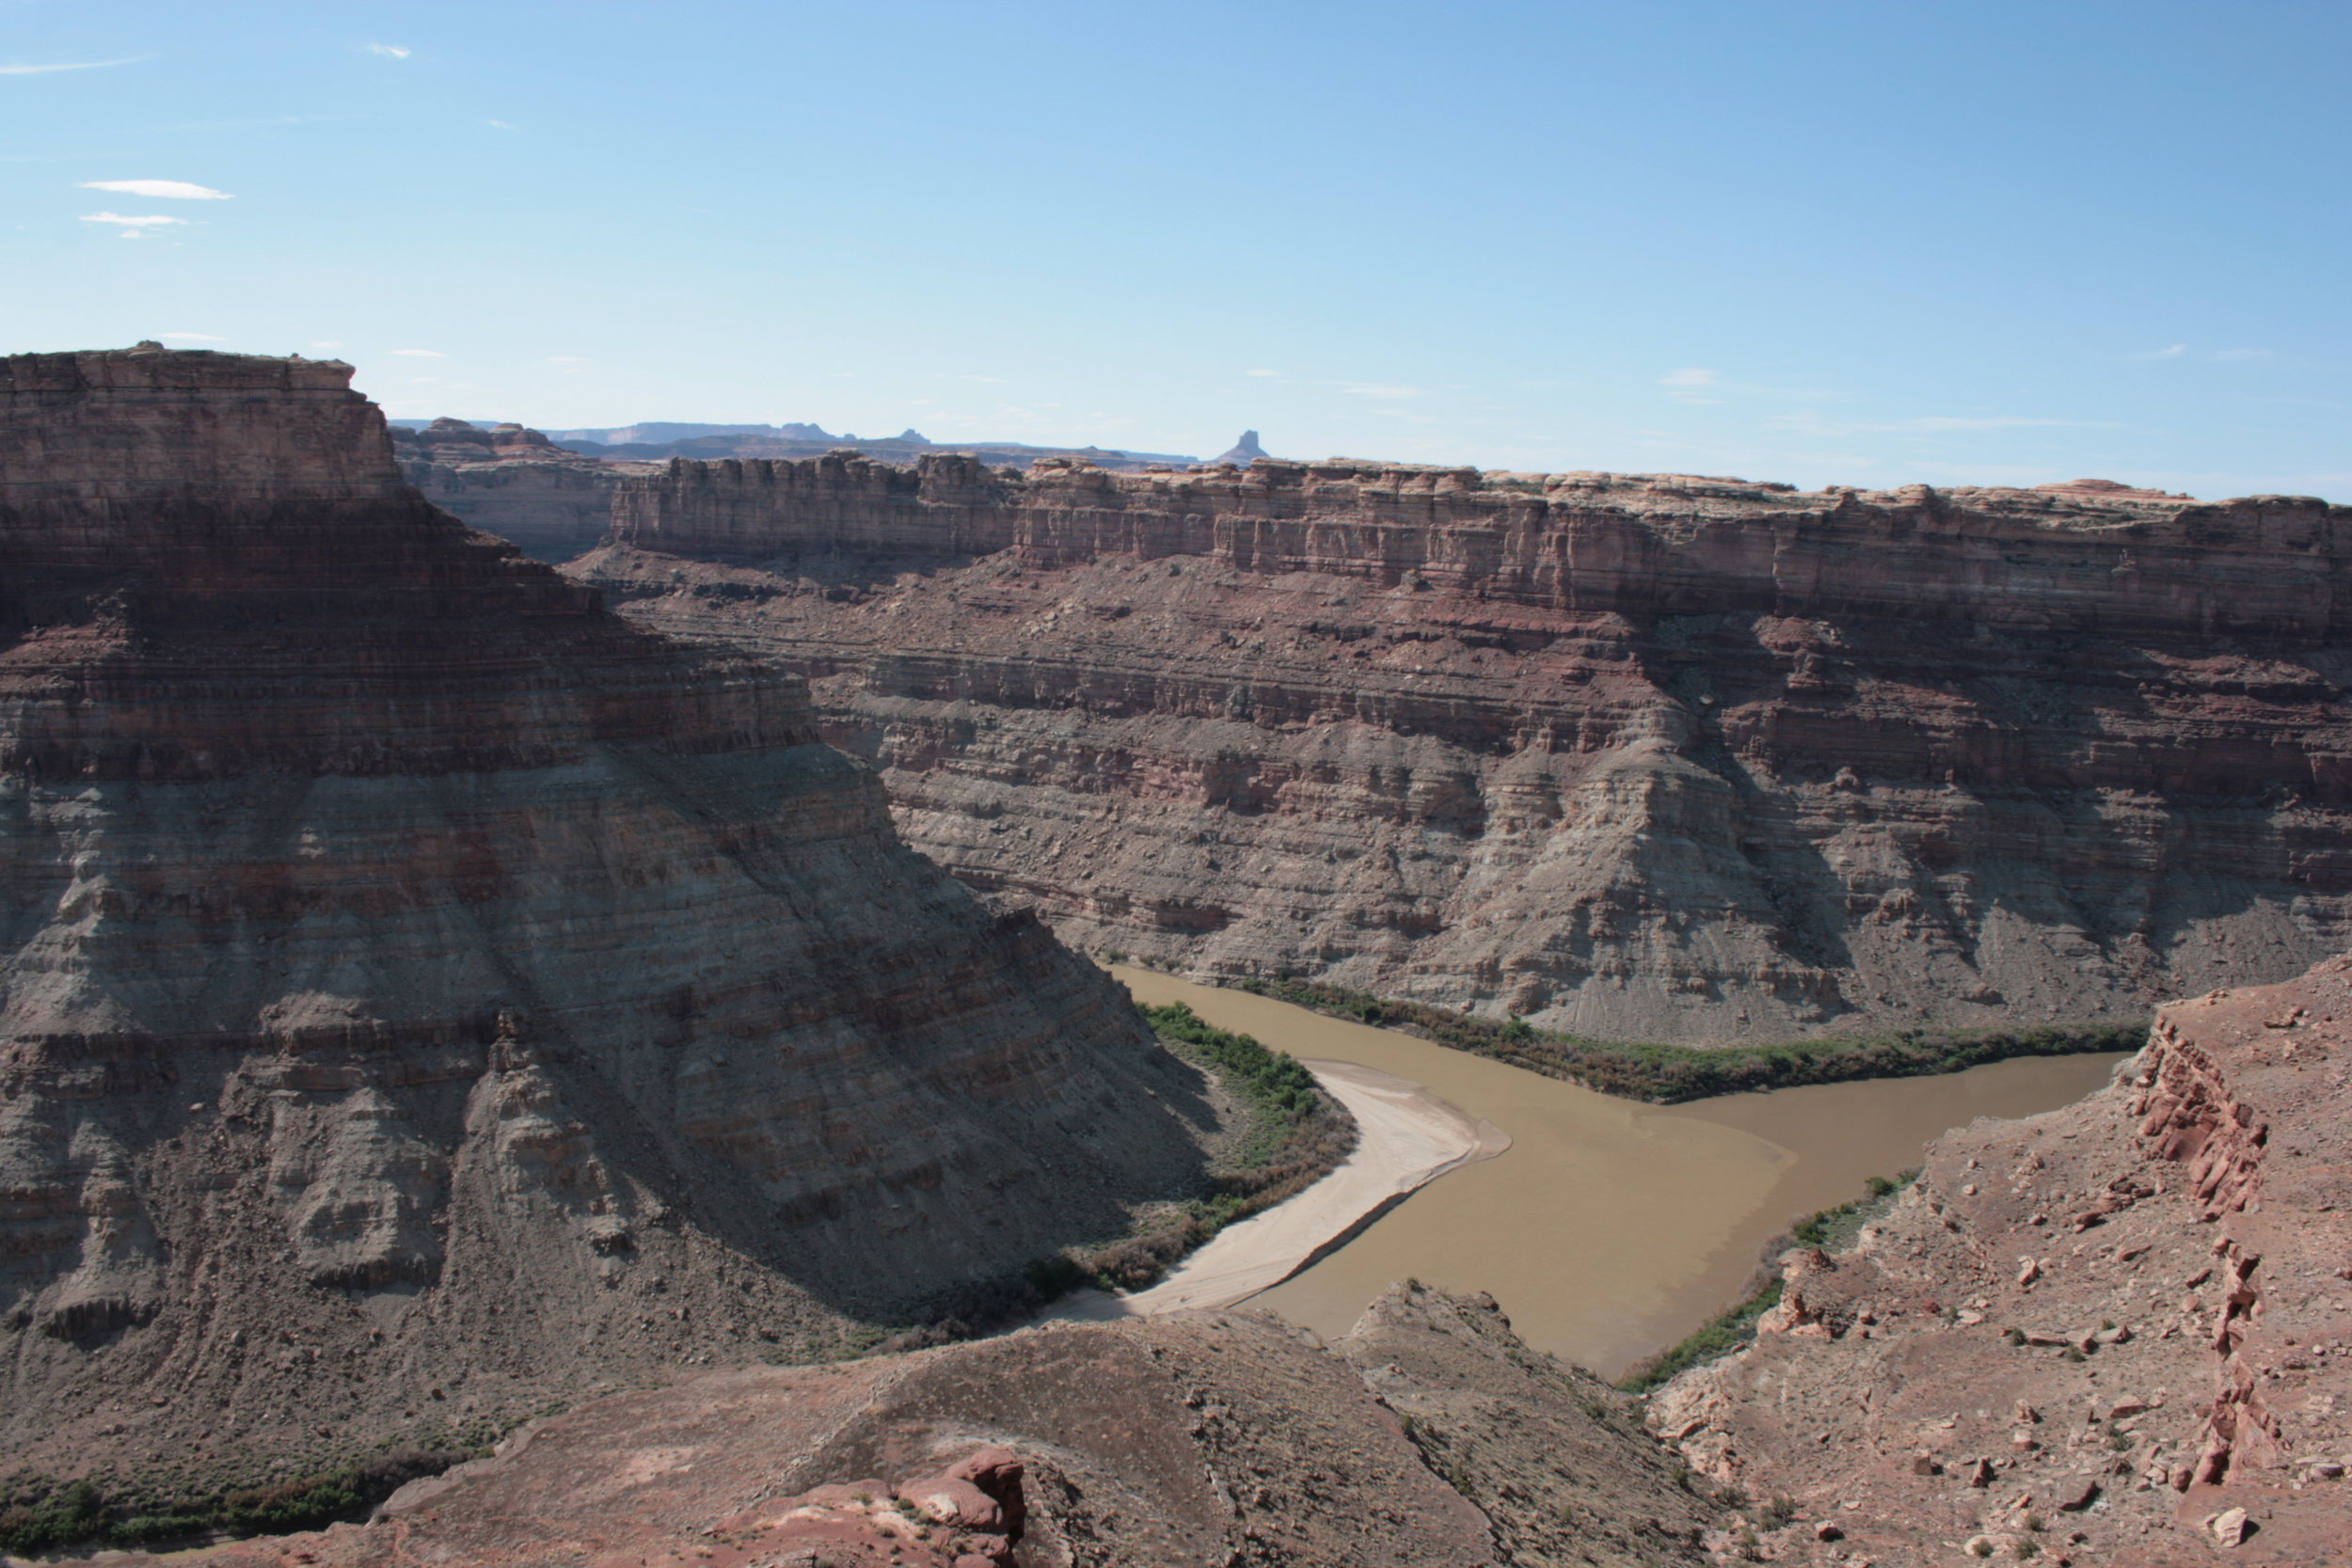 The confluence of the Green and Colorado Rivers, 2011